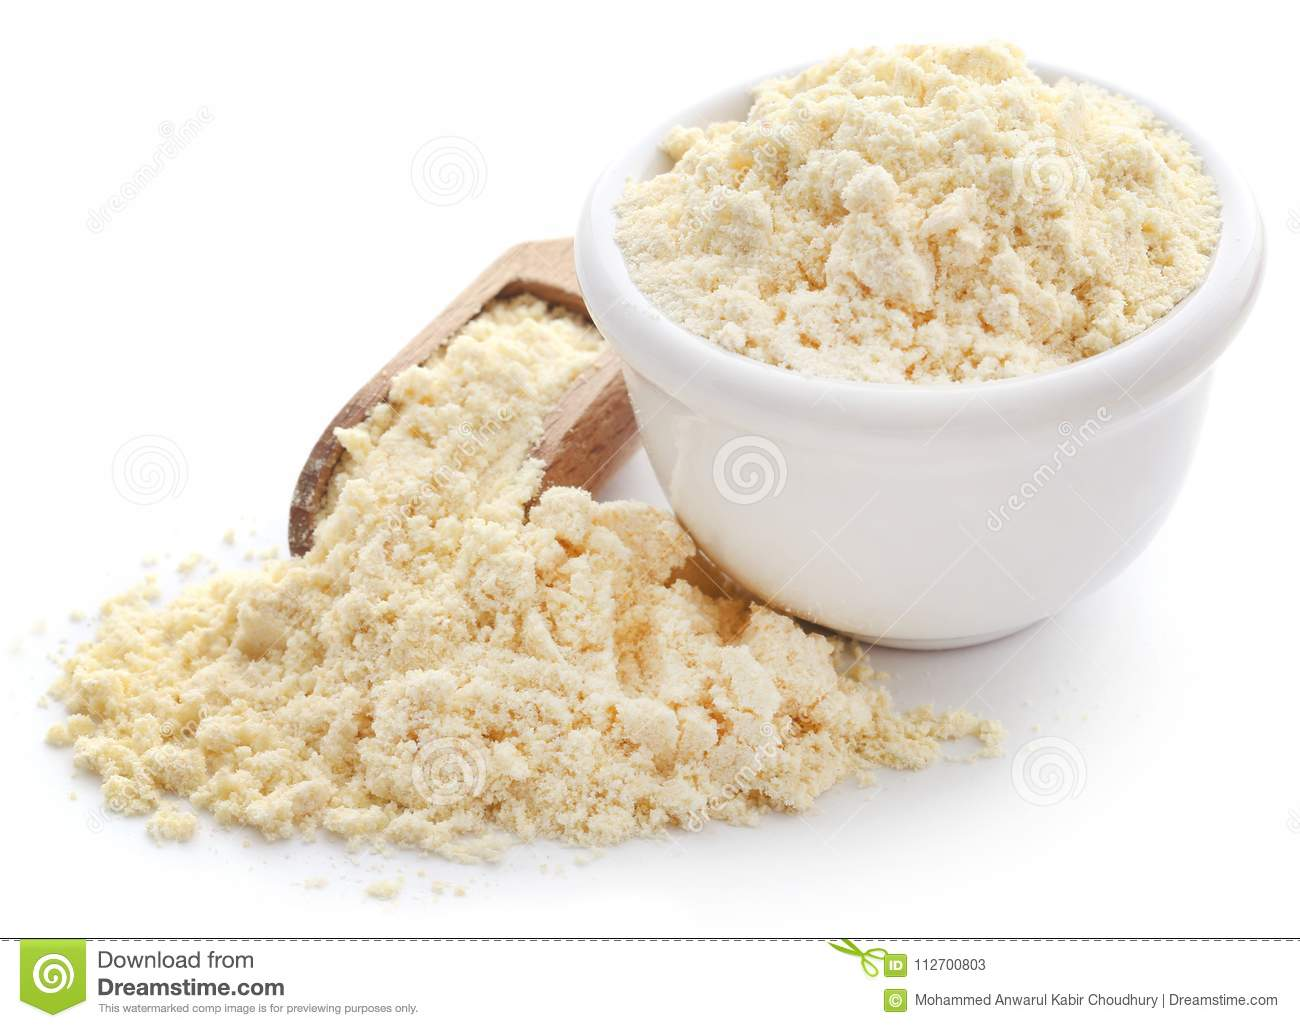 Gram flour in bowl and wooden scoop